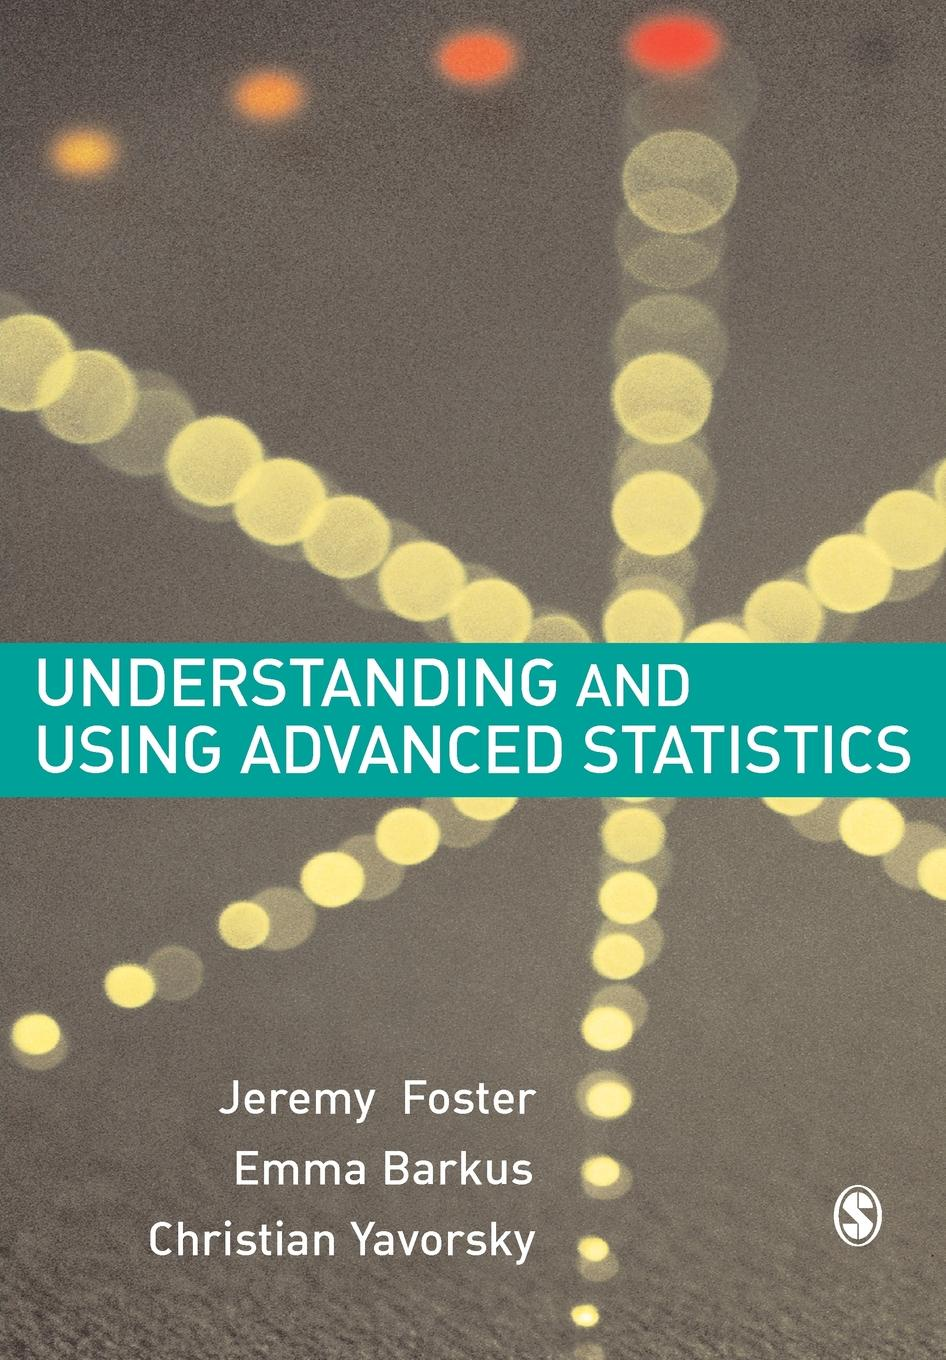 Jeremy J. Dr Foster, Emma Barkus, Christian Yavorsky Understanding and Using Advanced Statistics. A Practical Guide for Students martin abbott lee understanding educational statistics using microsoft excel and spss